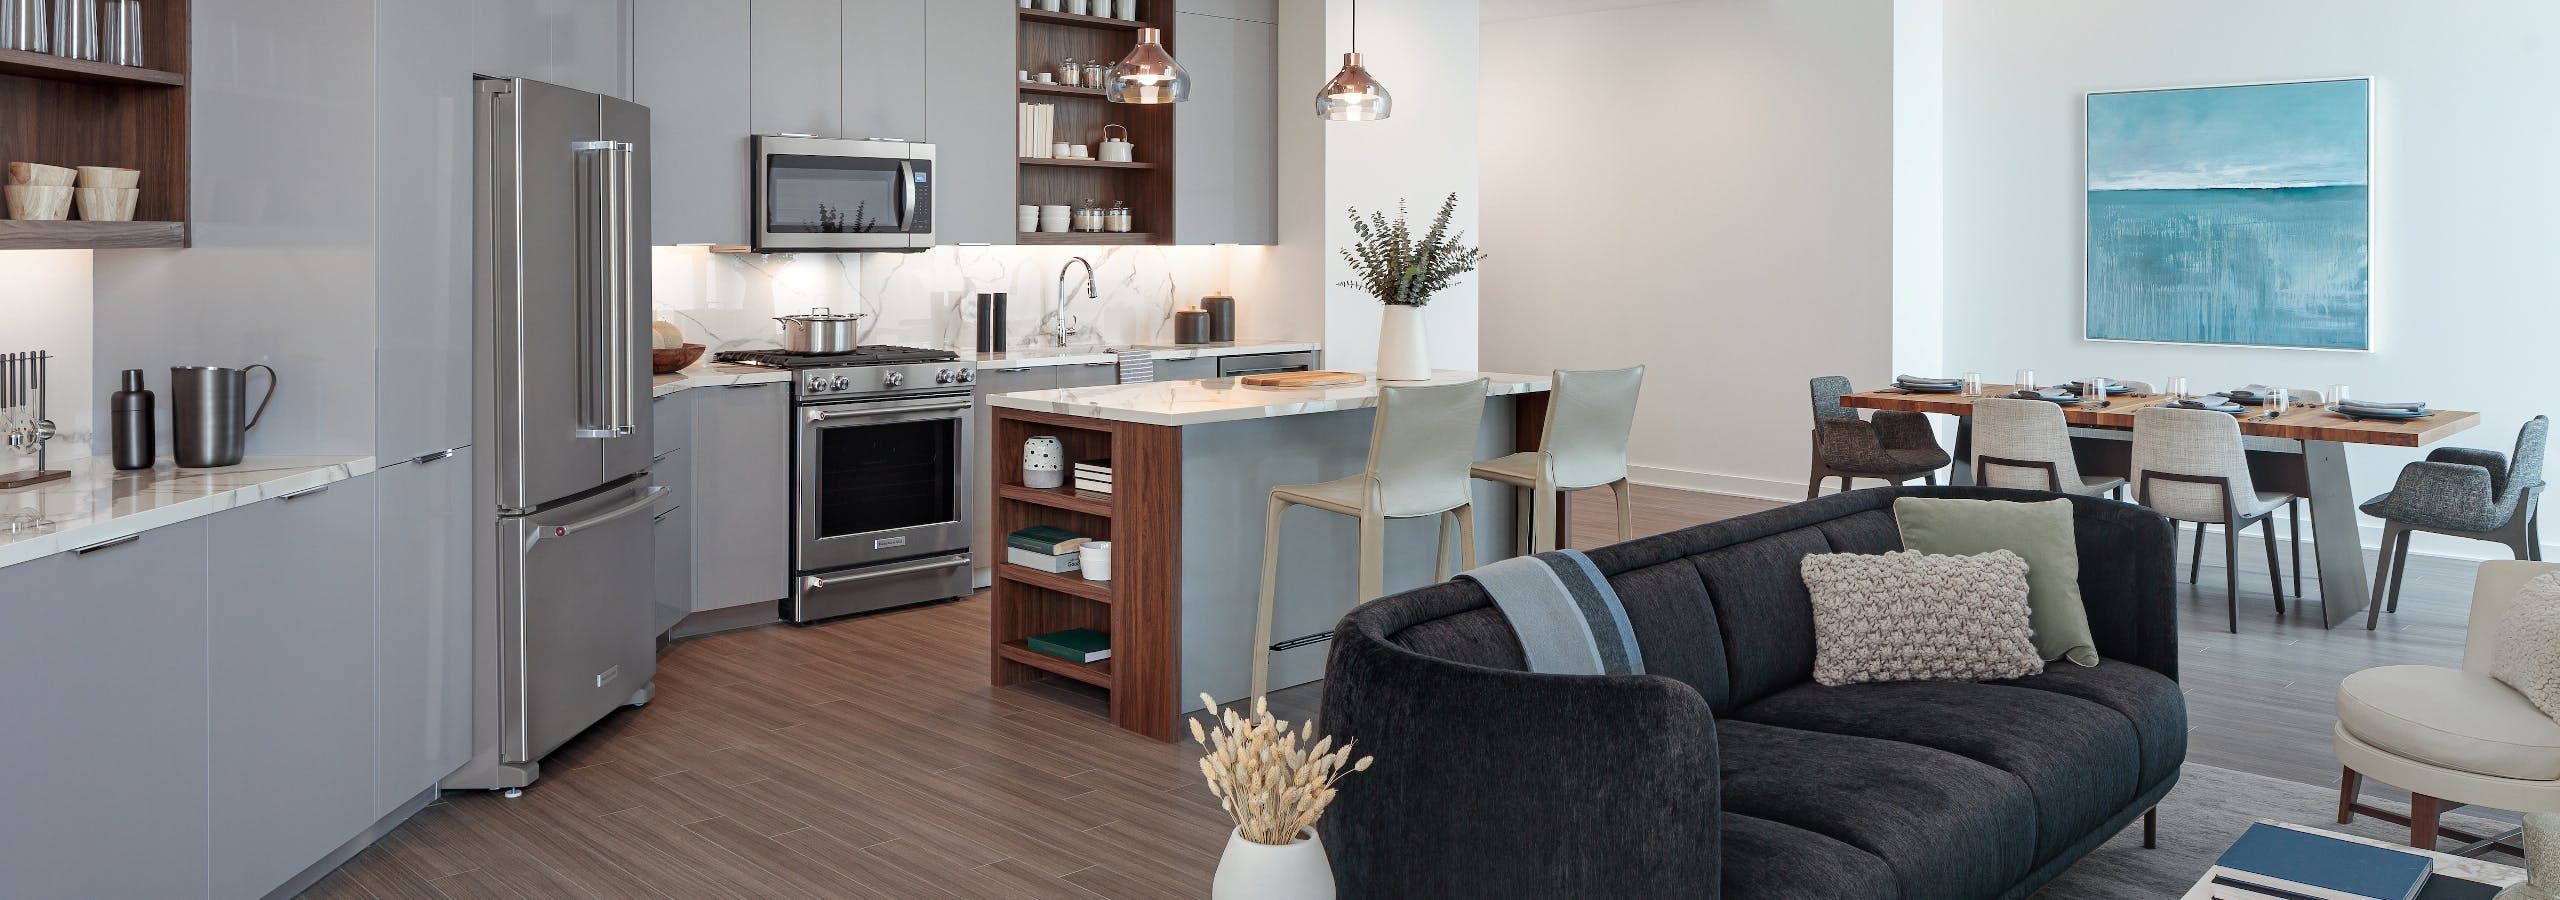 Island kitchen, living room and dining area